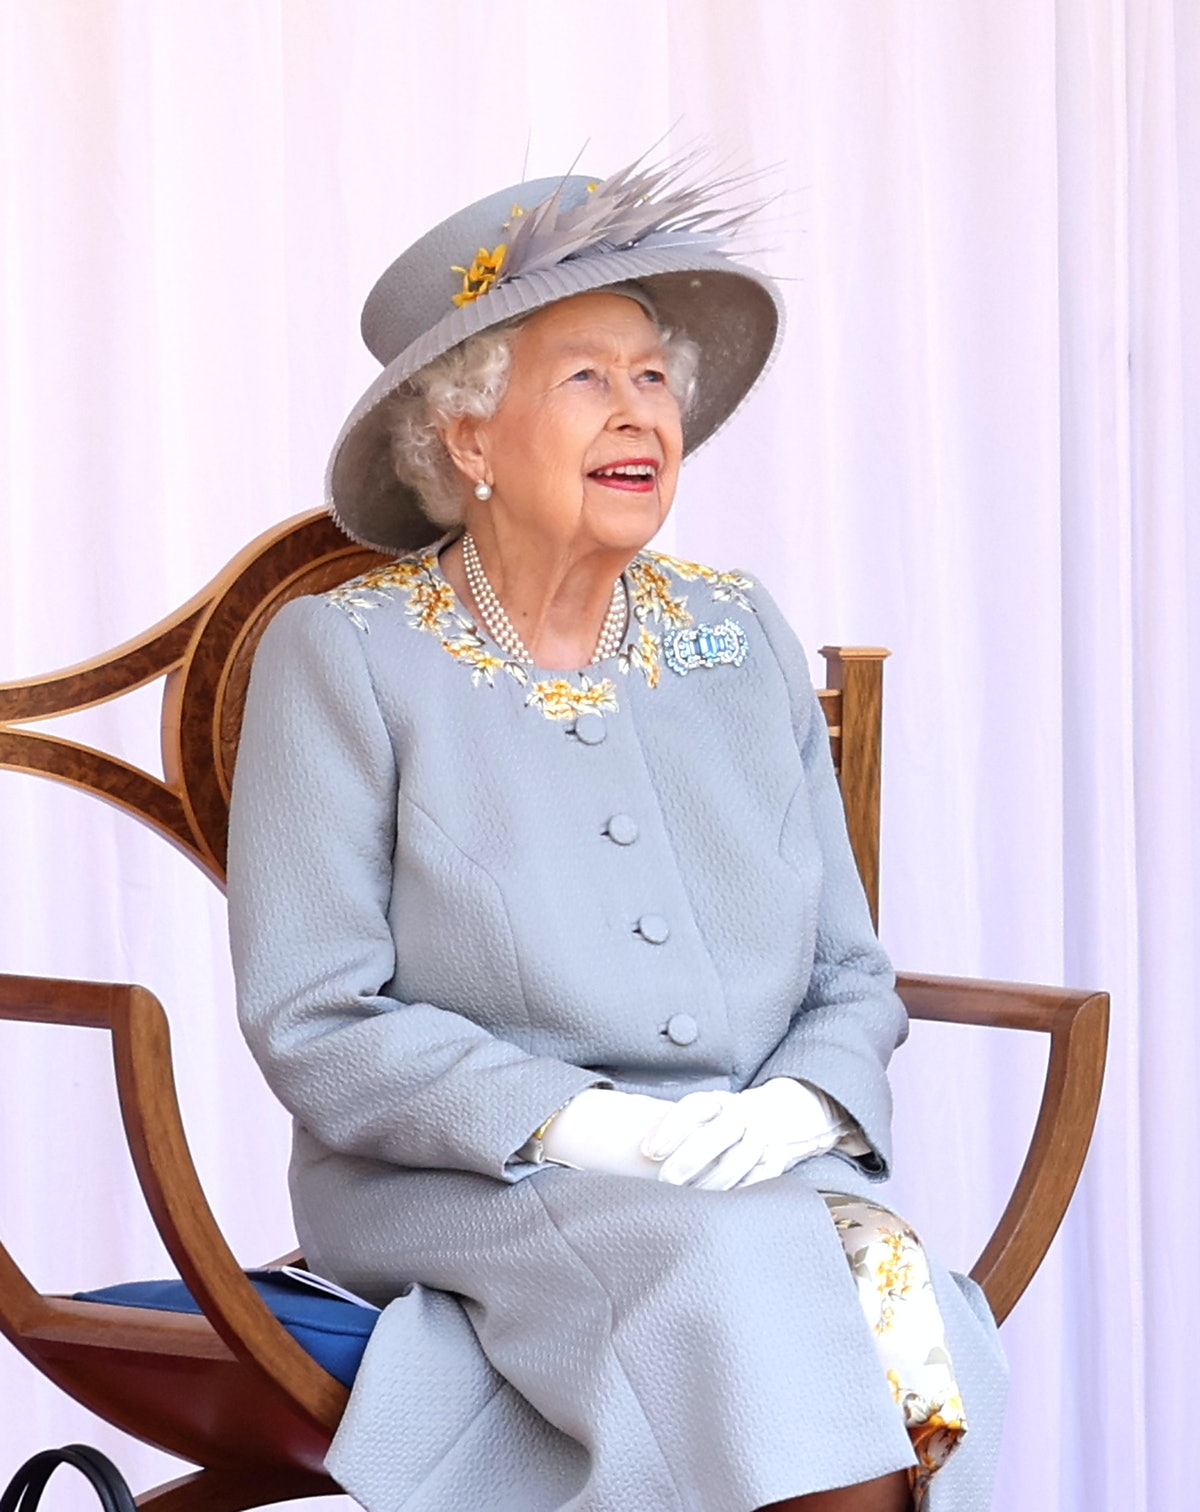 WINDSOR, ENGLAND - JUNE 12: attends a military ceremony in the Quadrangle of Windsor Castle to mark ...